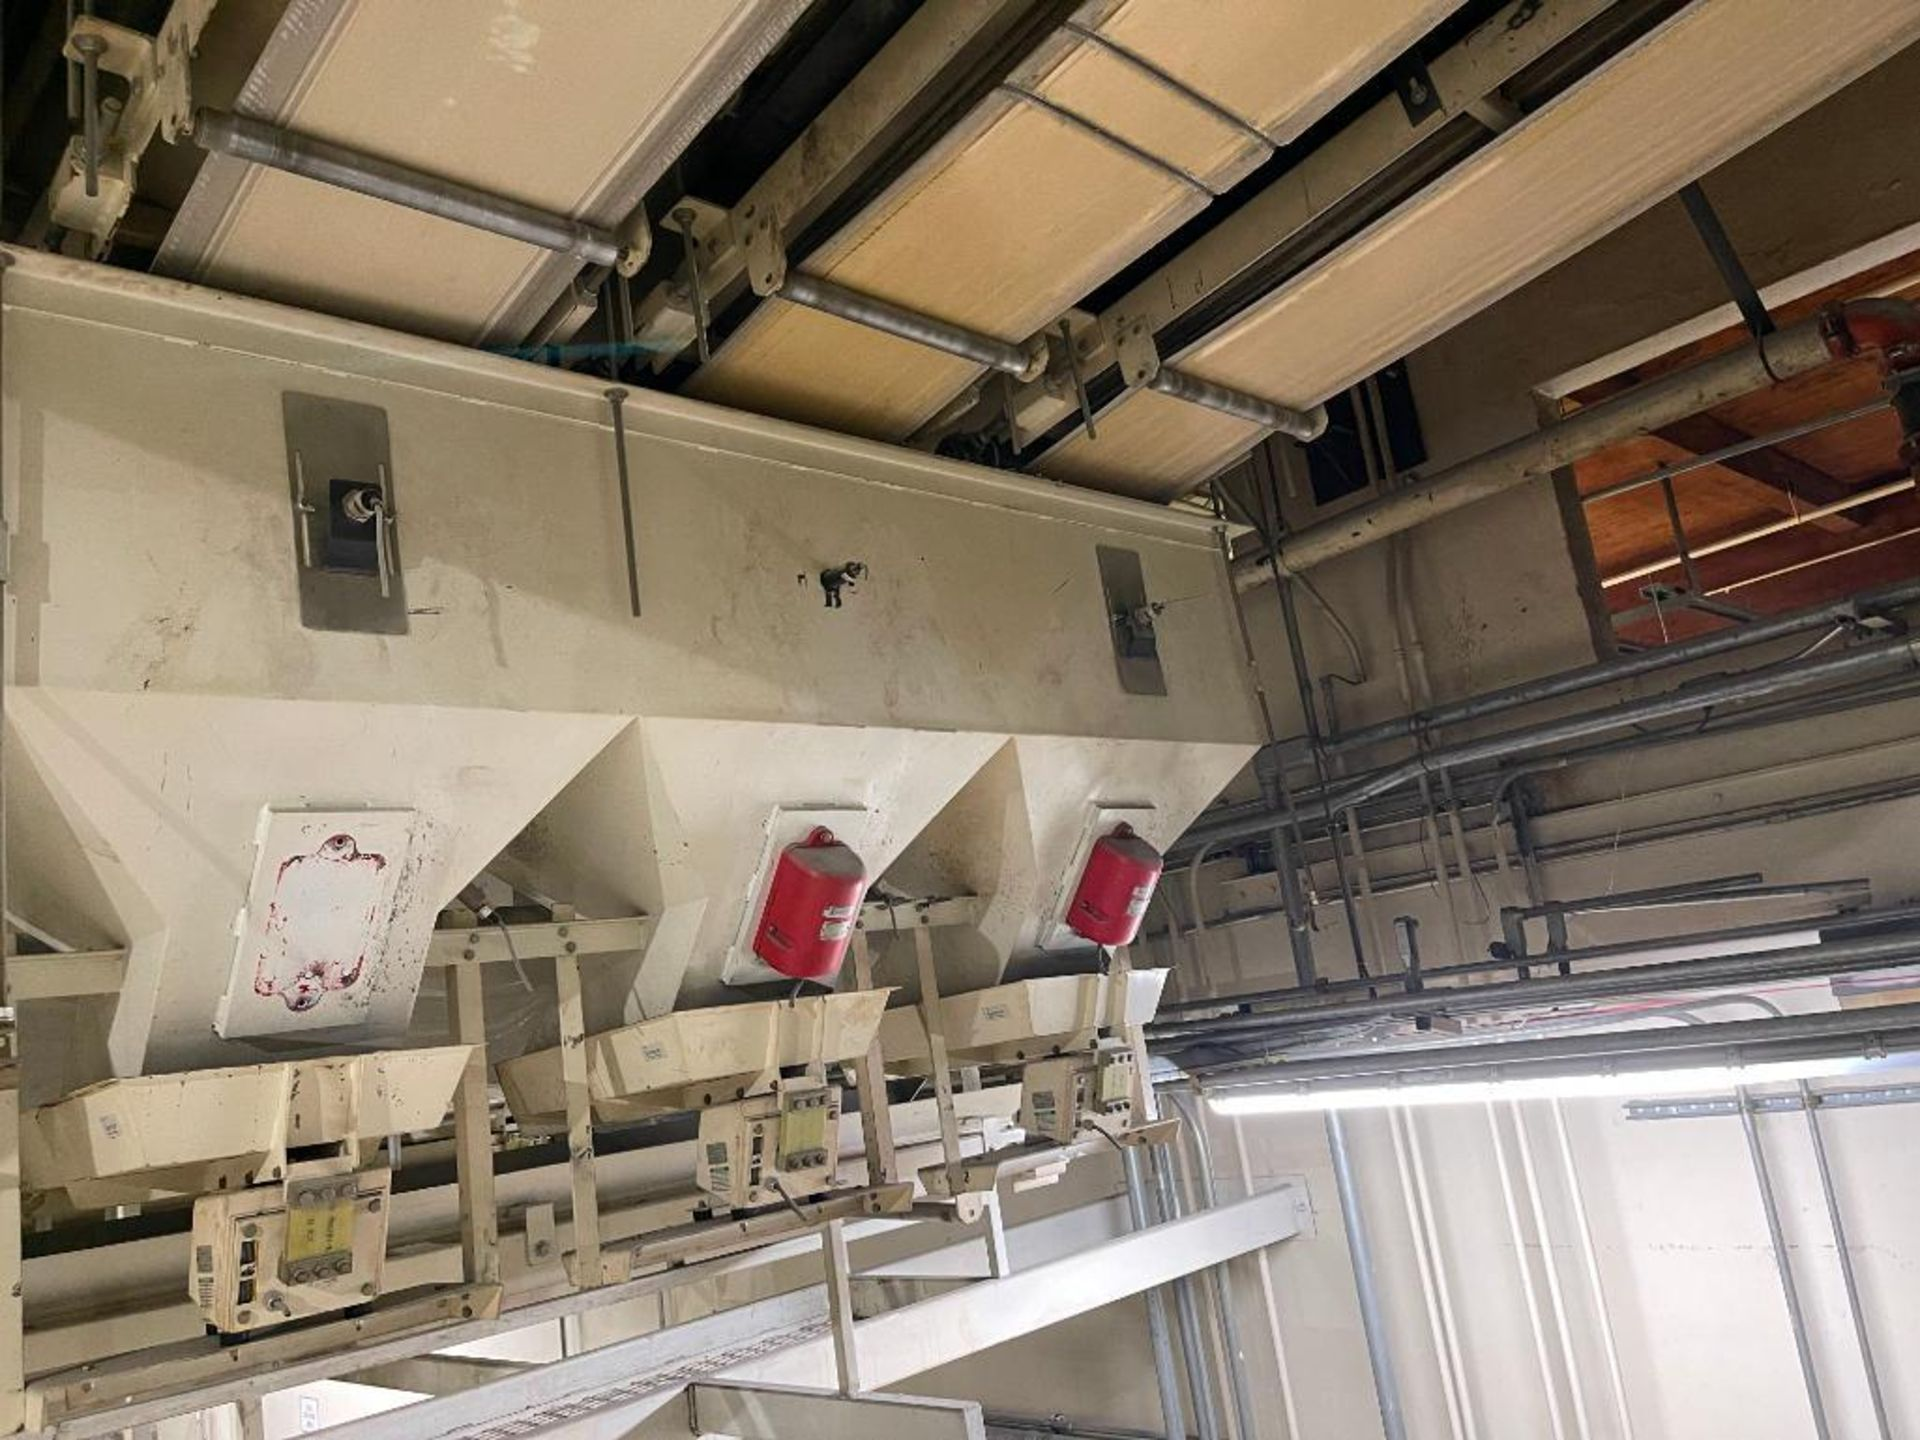 Aseeco 5-bin blending system with 5 Syntron vibratory feeders on bottom - Image 18 of 18